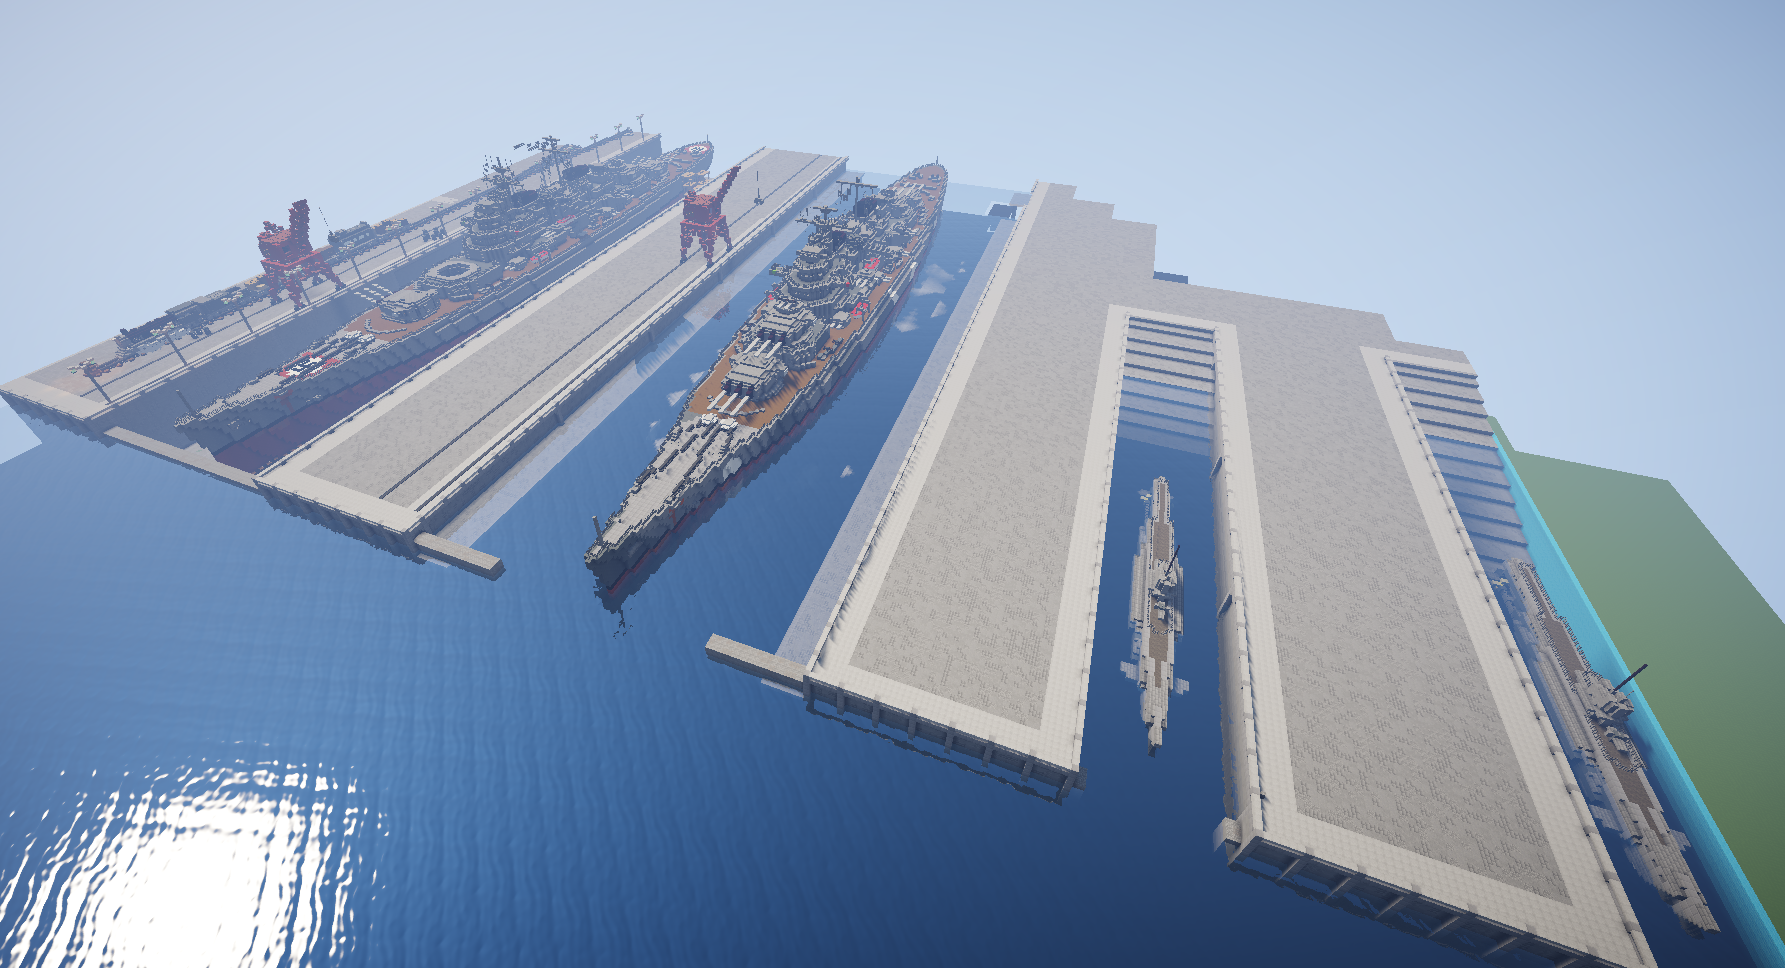 upload_2018-7-17_0-55-54.png